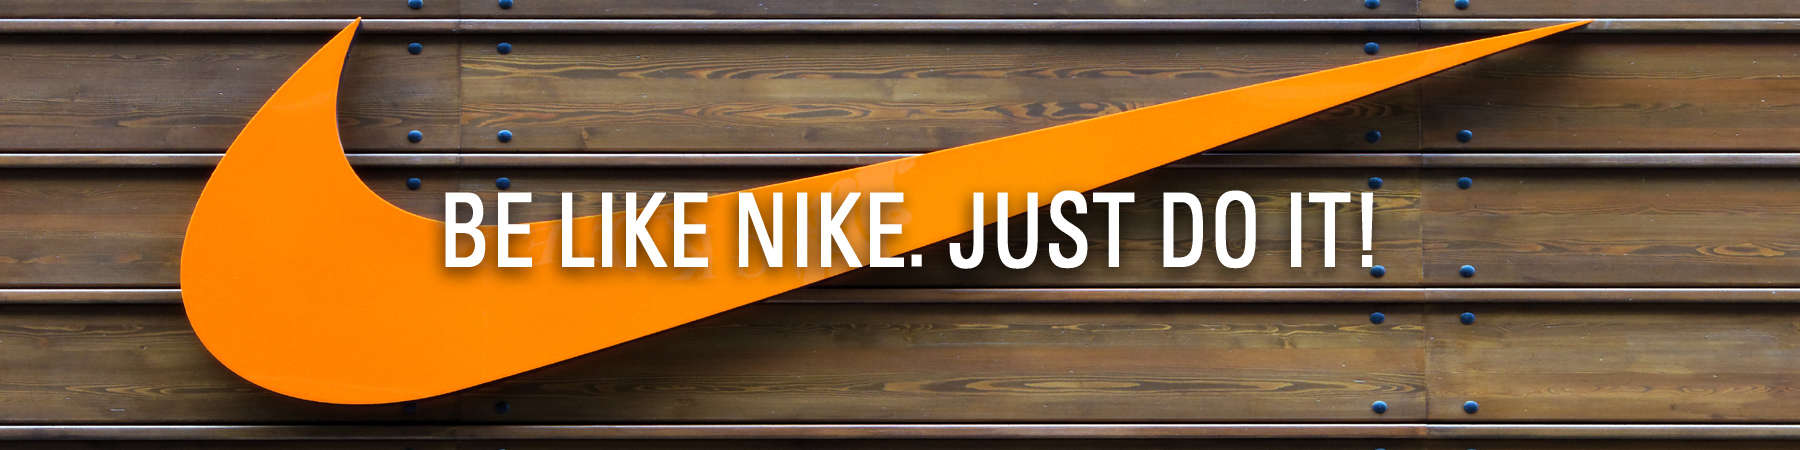 Be Like Nike. Just Do It!